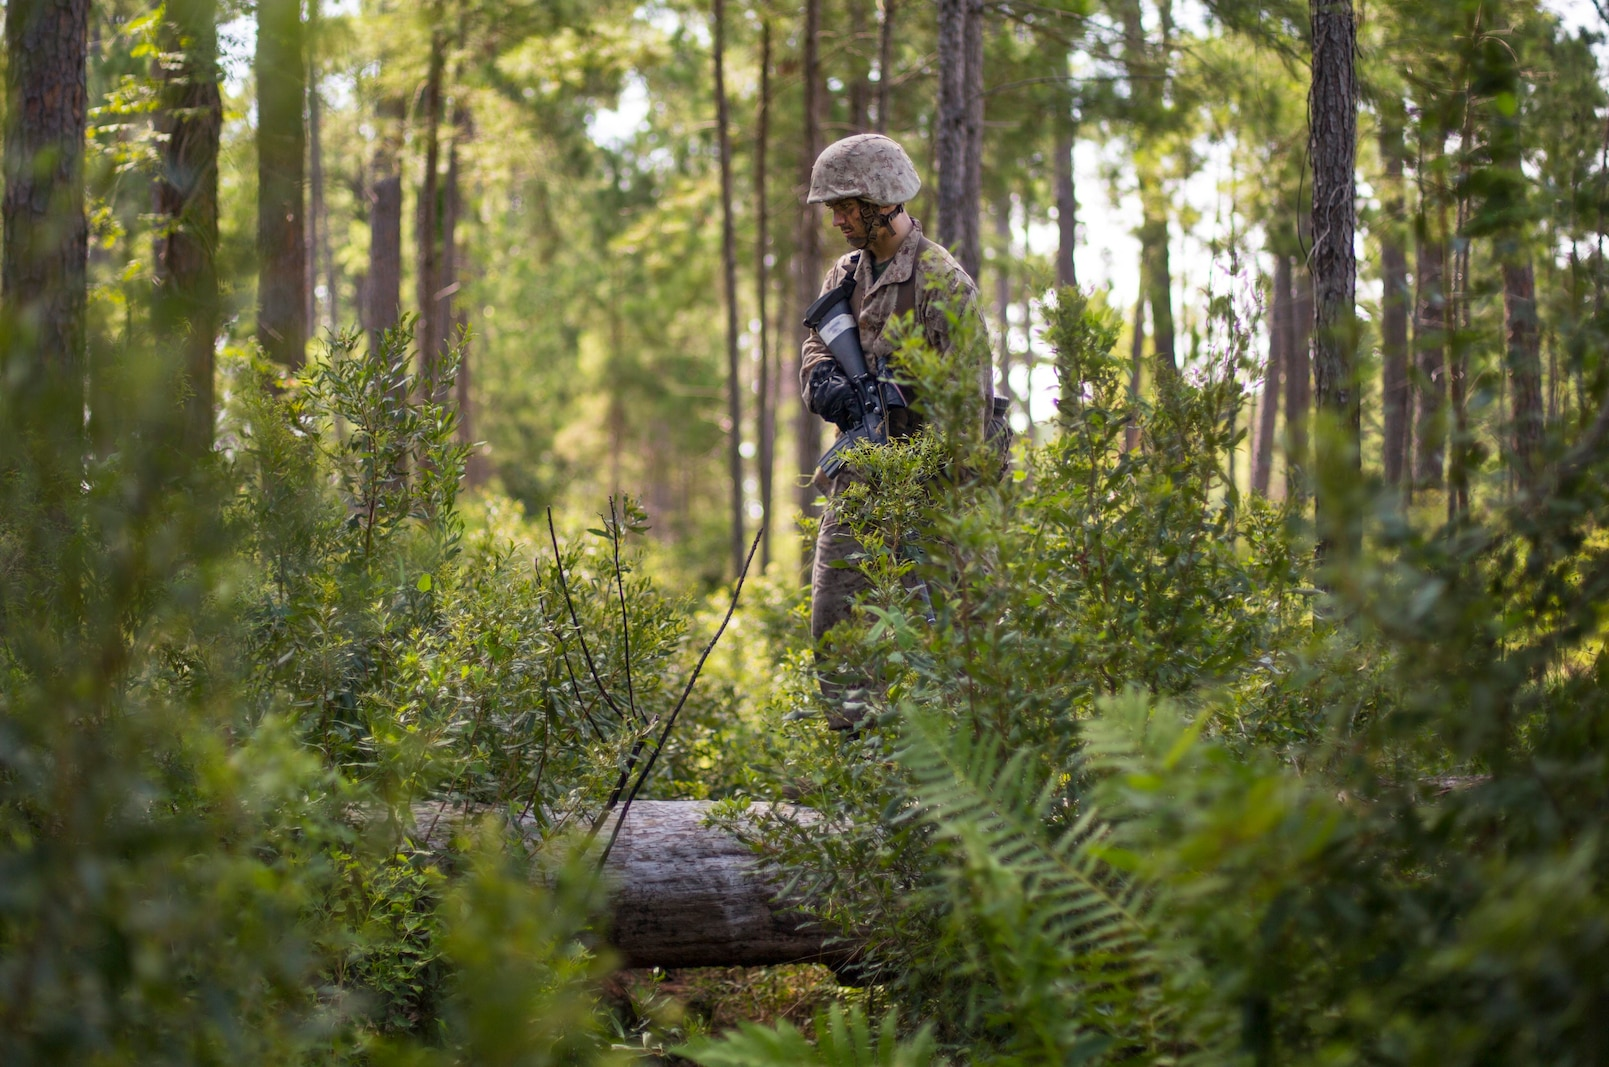 A recruit with Fox Company participates in the Crucible on Parris Island, S.C. August 1, 2019. The Crucible is the culminating event that test recruits mentally and physically, it is the final step before becoming a U.S. Marine. 